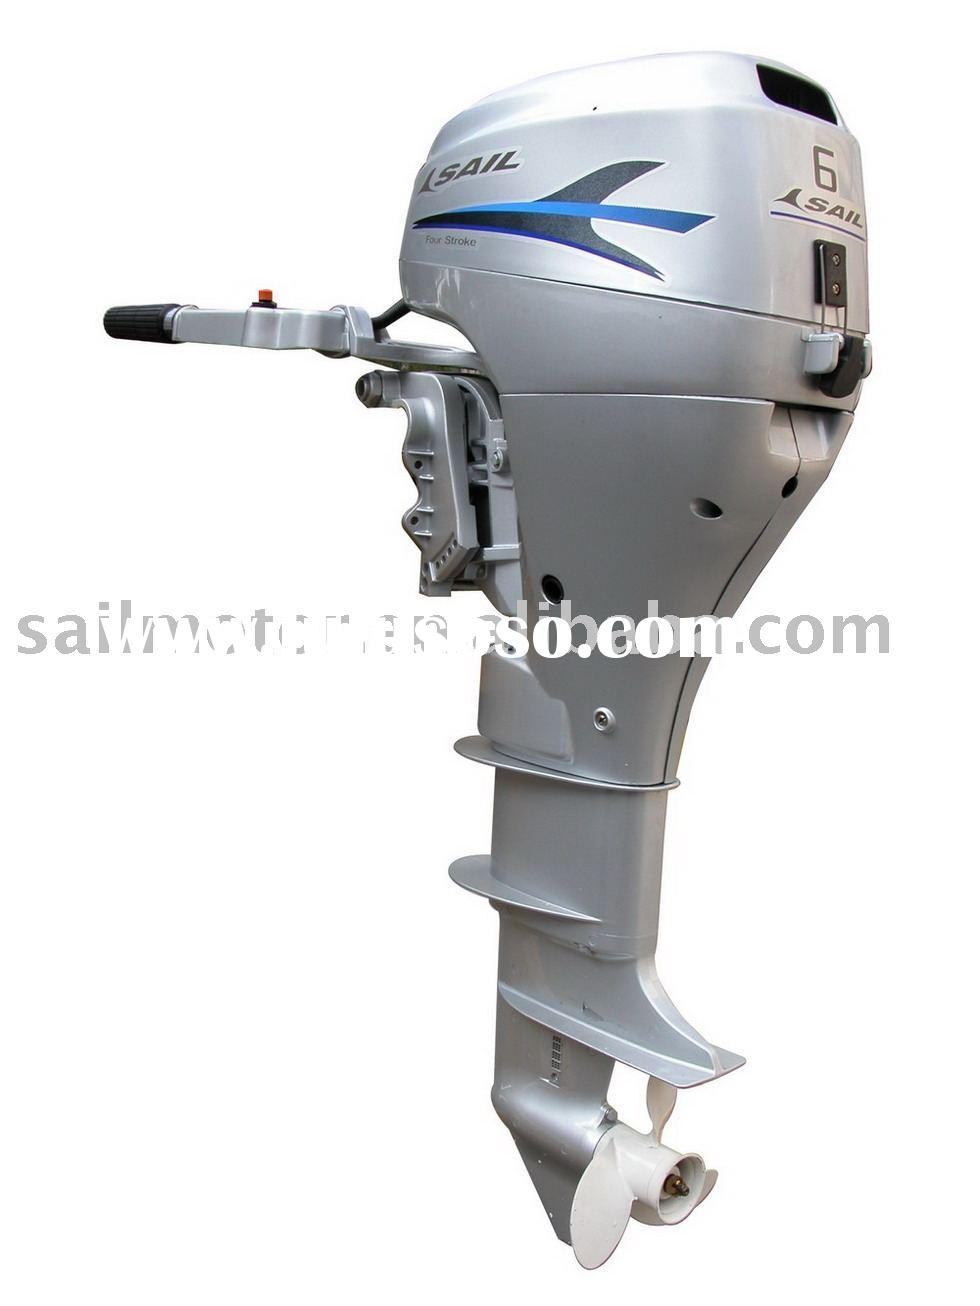 Outboard engine / outboard motor 4-Stroke 6HP / 8HP (Short /Long Shaft)- SAIL manufacturer